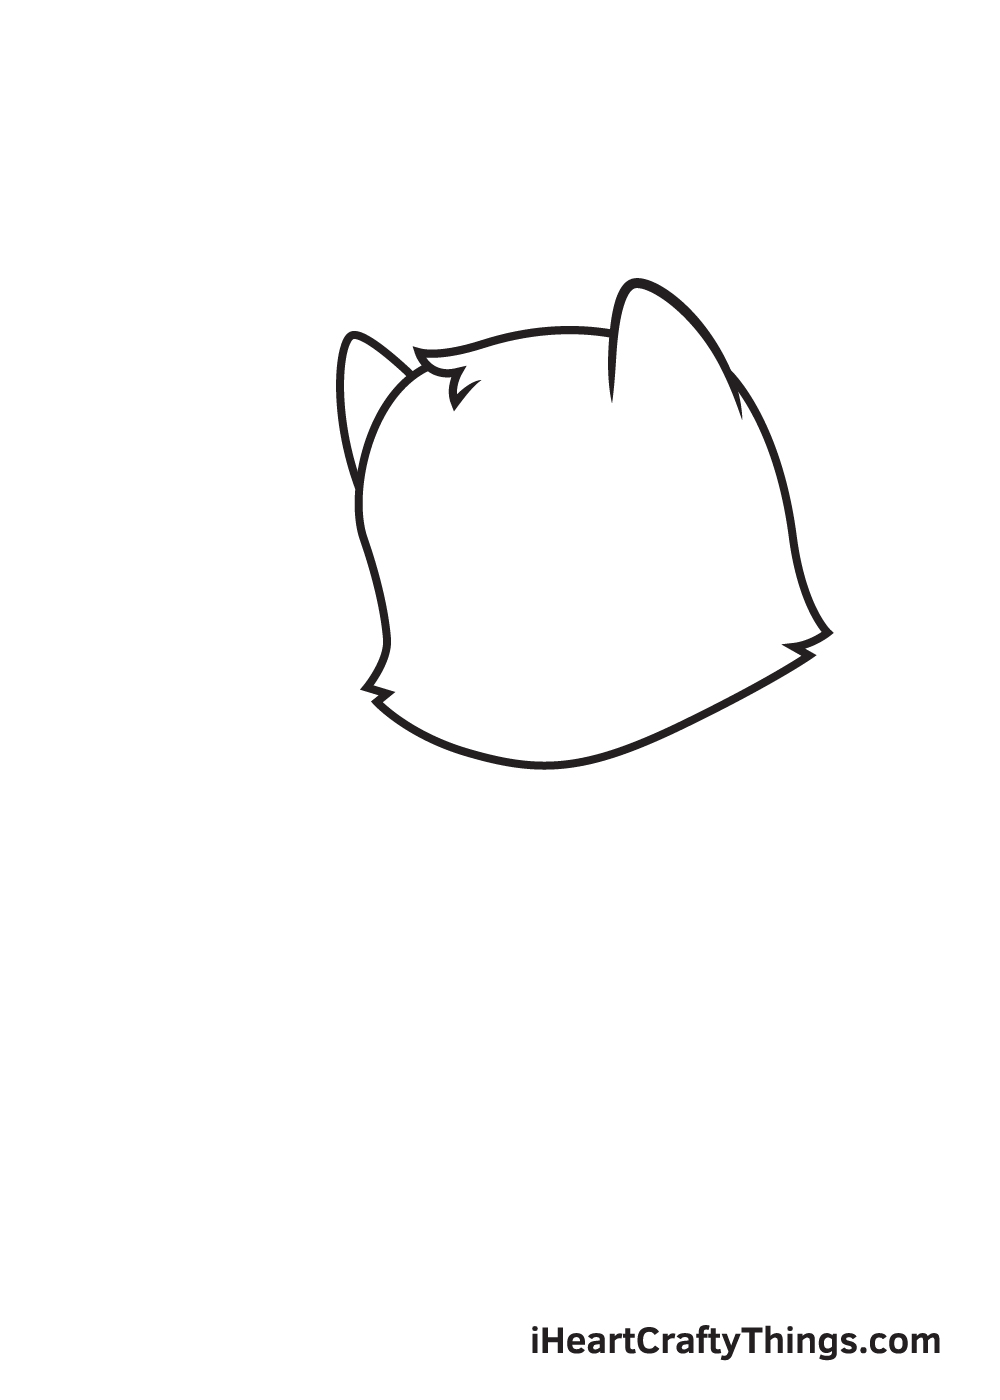 cat drawing – step 3